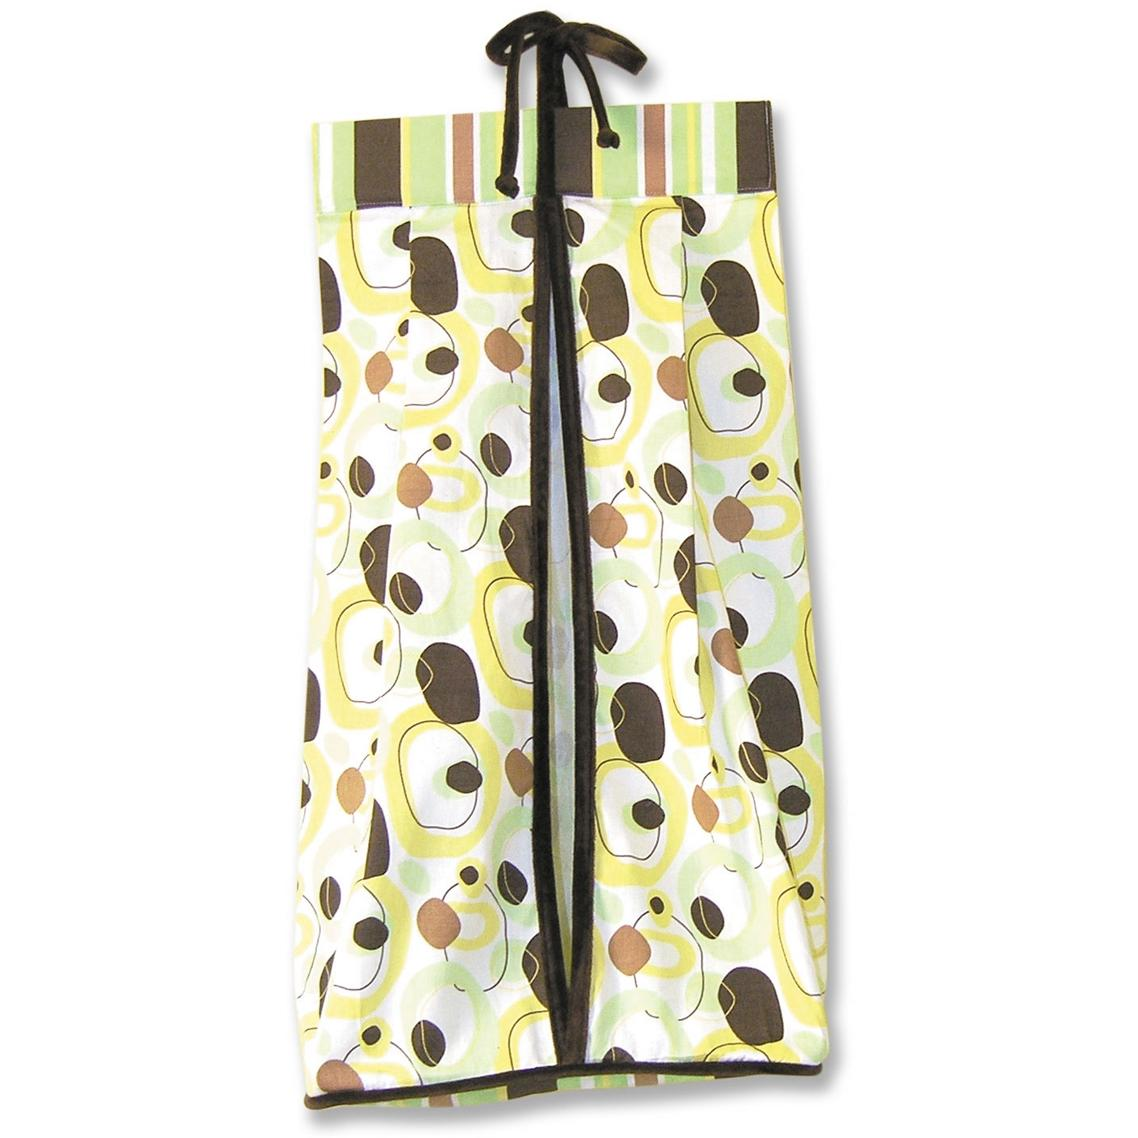 Trend Lab Diaper Stacker - Giggles